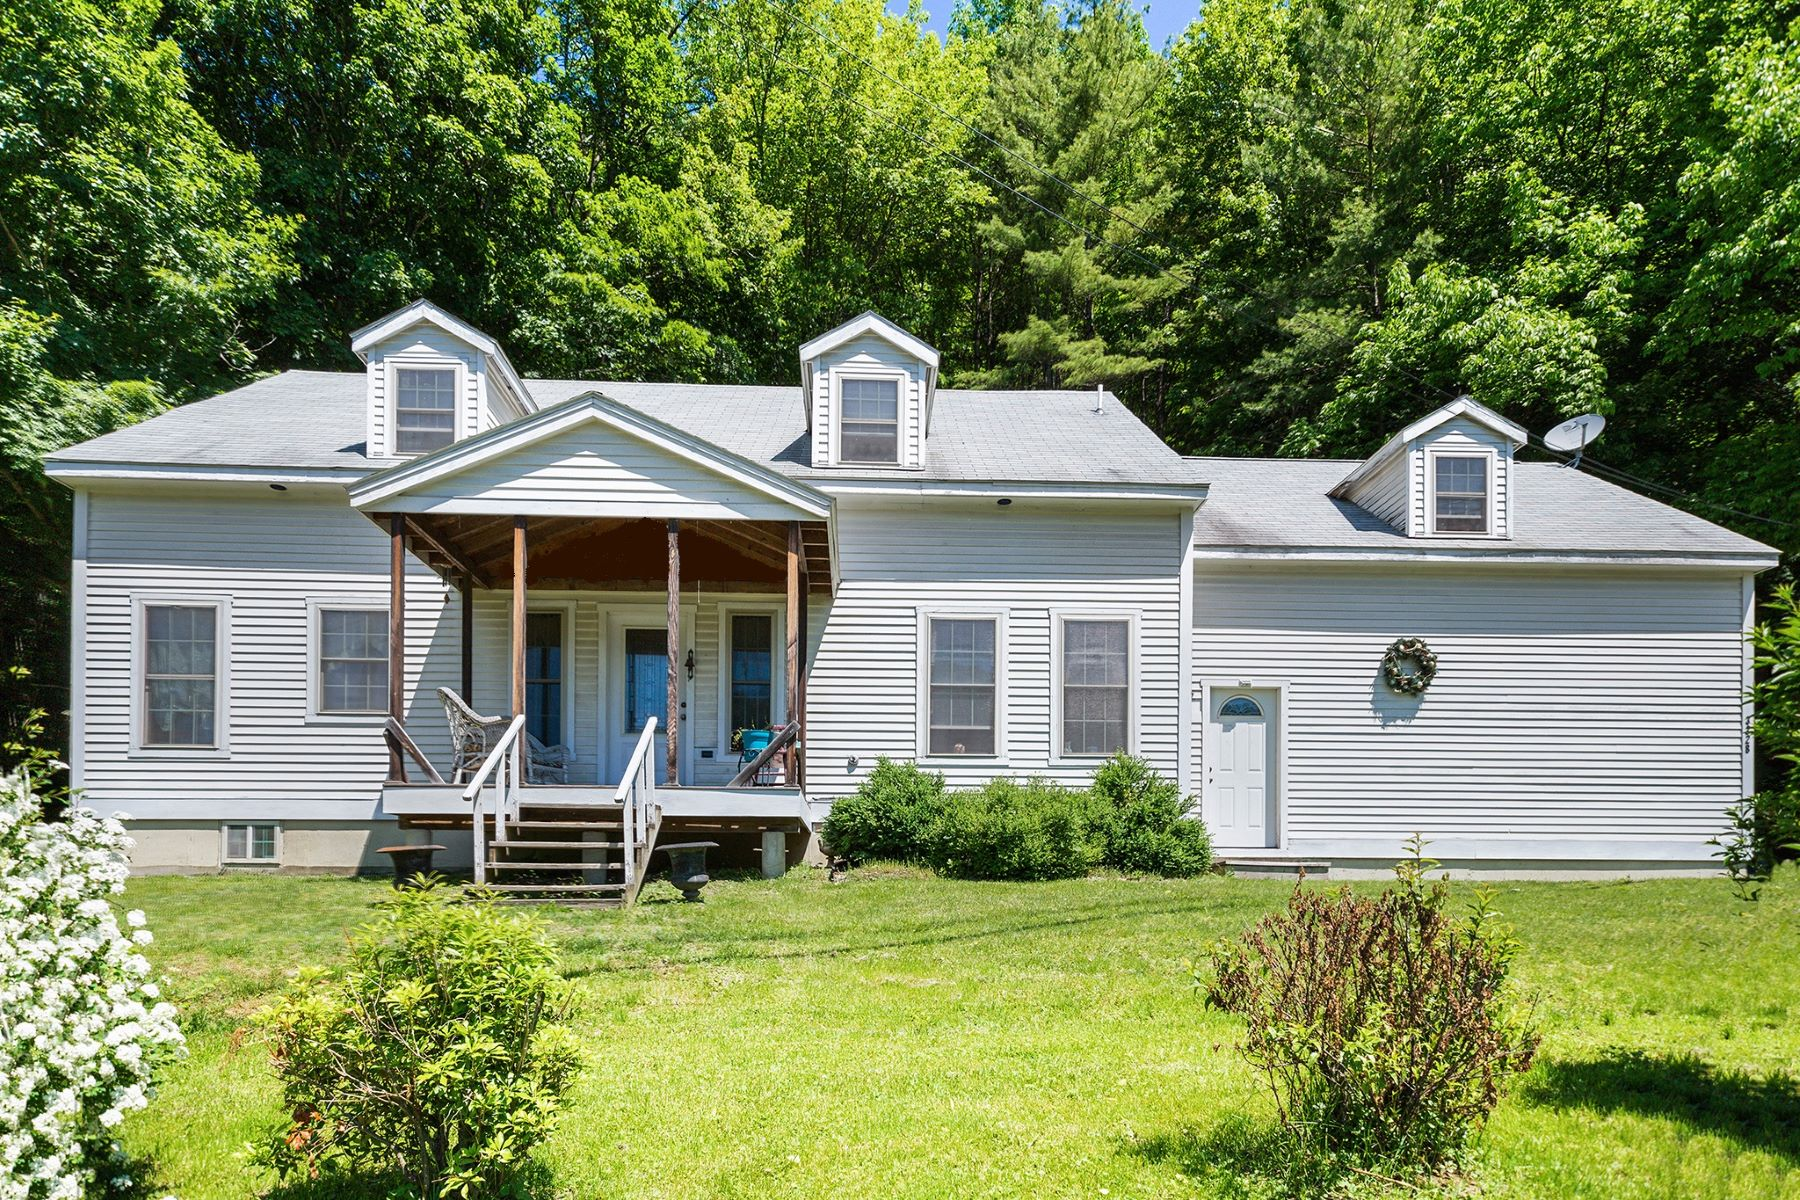 Single Family Homes for Sale at 3228 Vt 14 Route, Royalton 3228 Vt 14 Route Royalton, Vermont 05068 United States